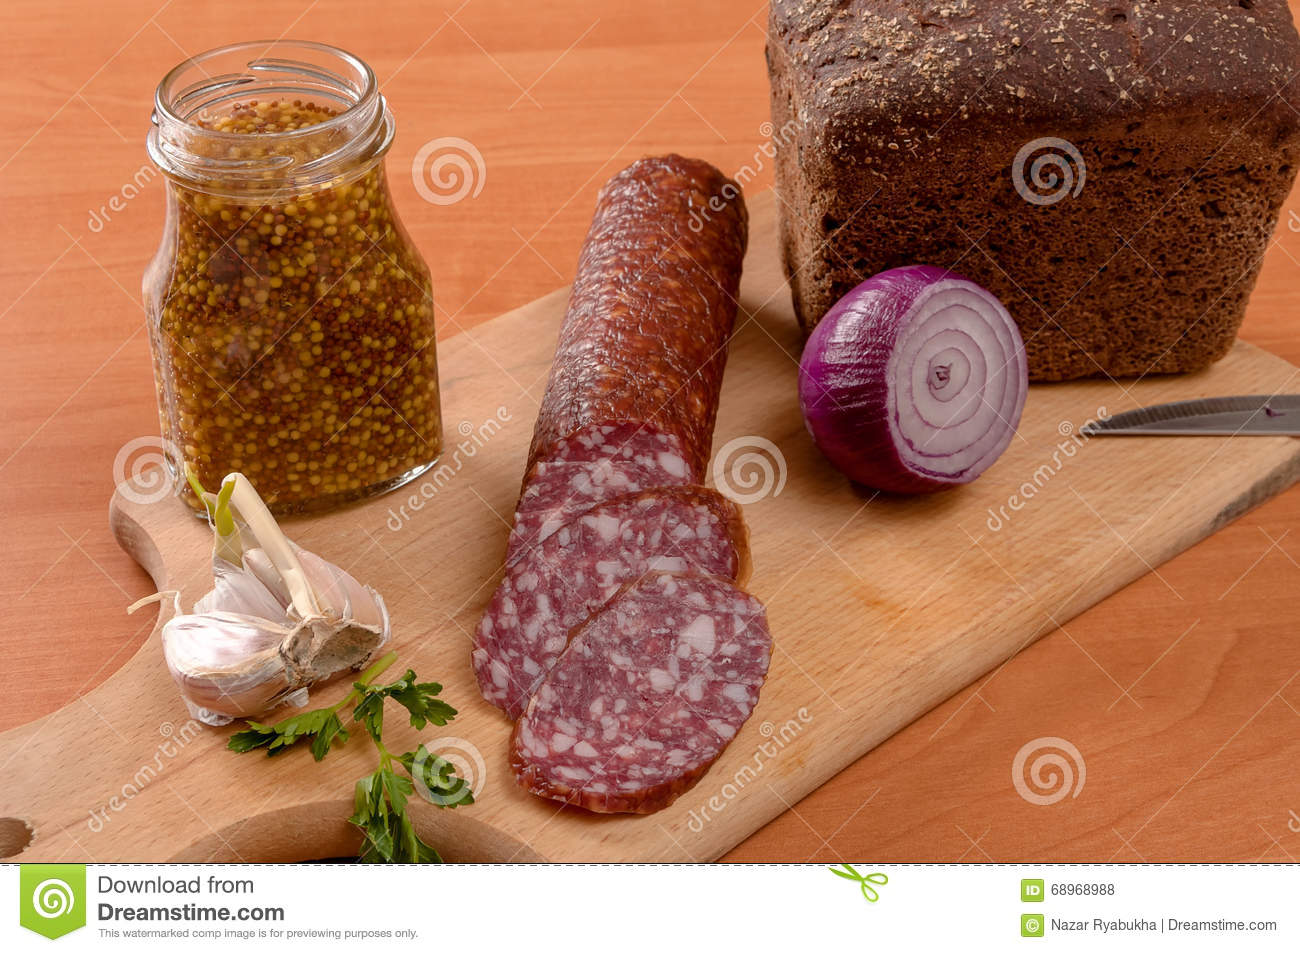 Sausage sliced with knife on a wooden table